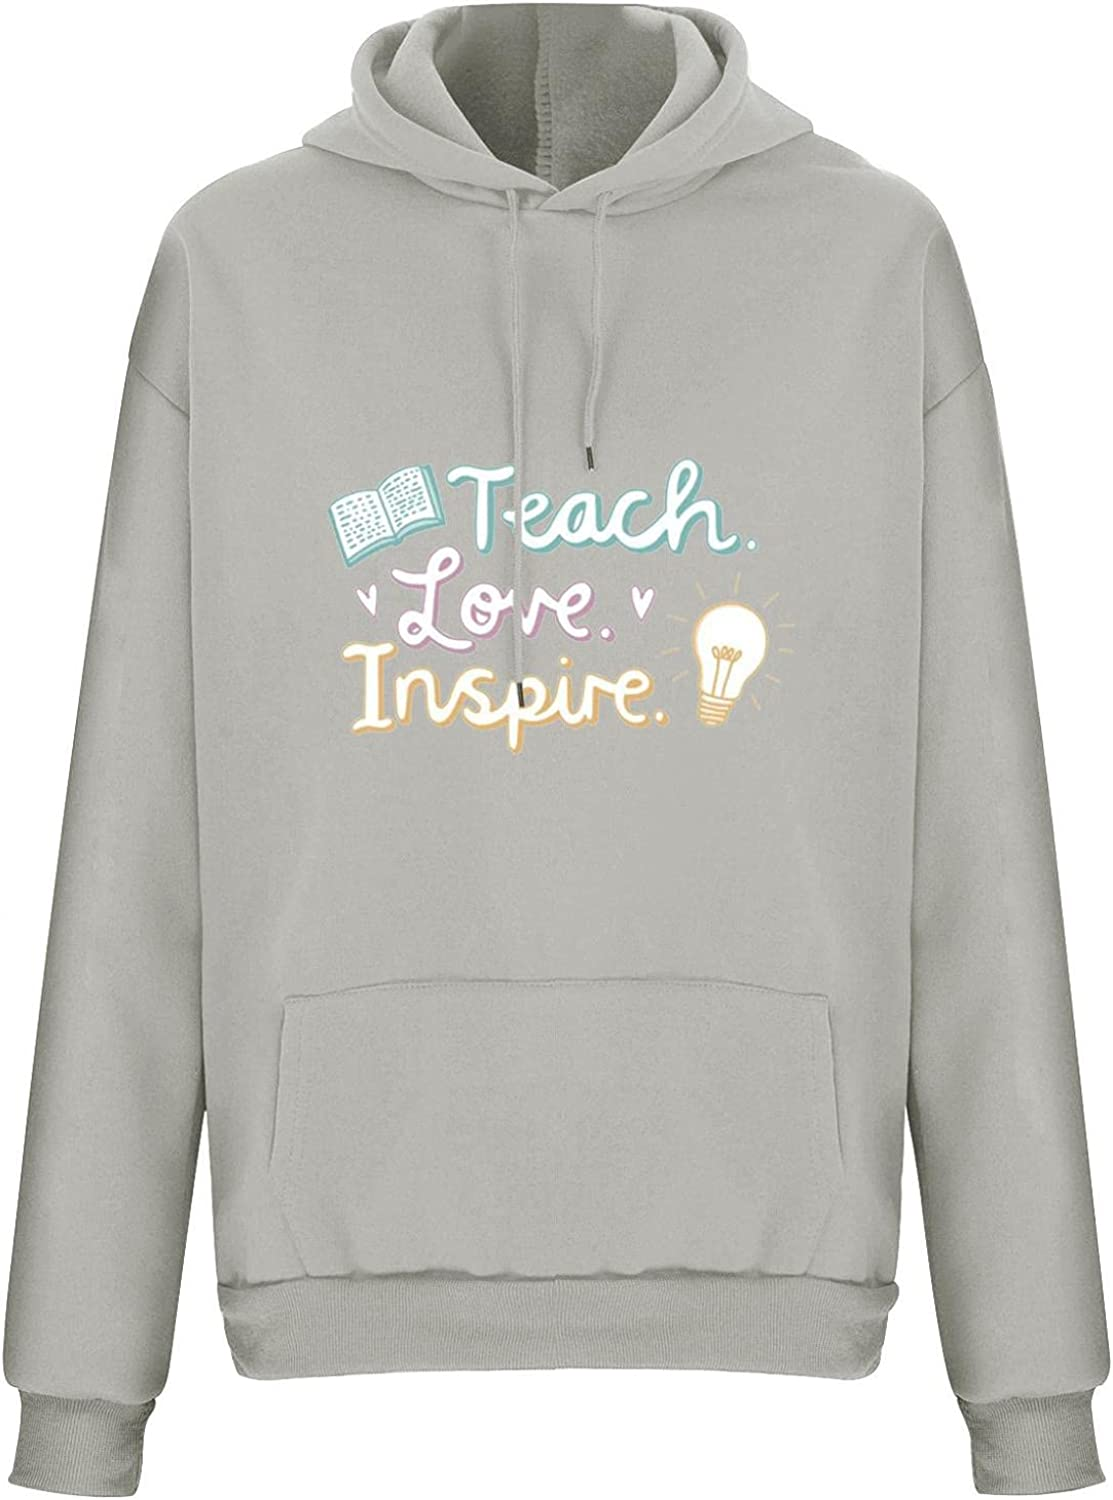 Winter Clothes for Women Teach Love Inspire Printed Sweatshirts Long Sleeve Tops Comfy Loose Hoodie Pullover